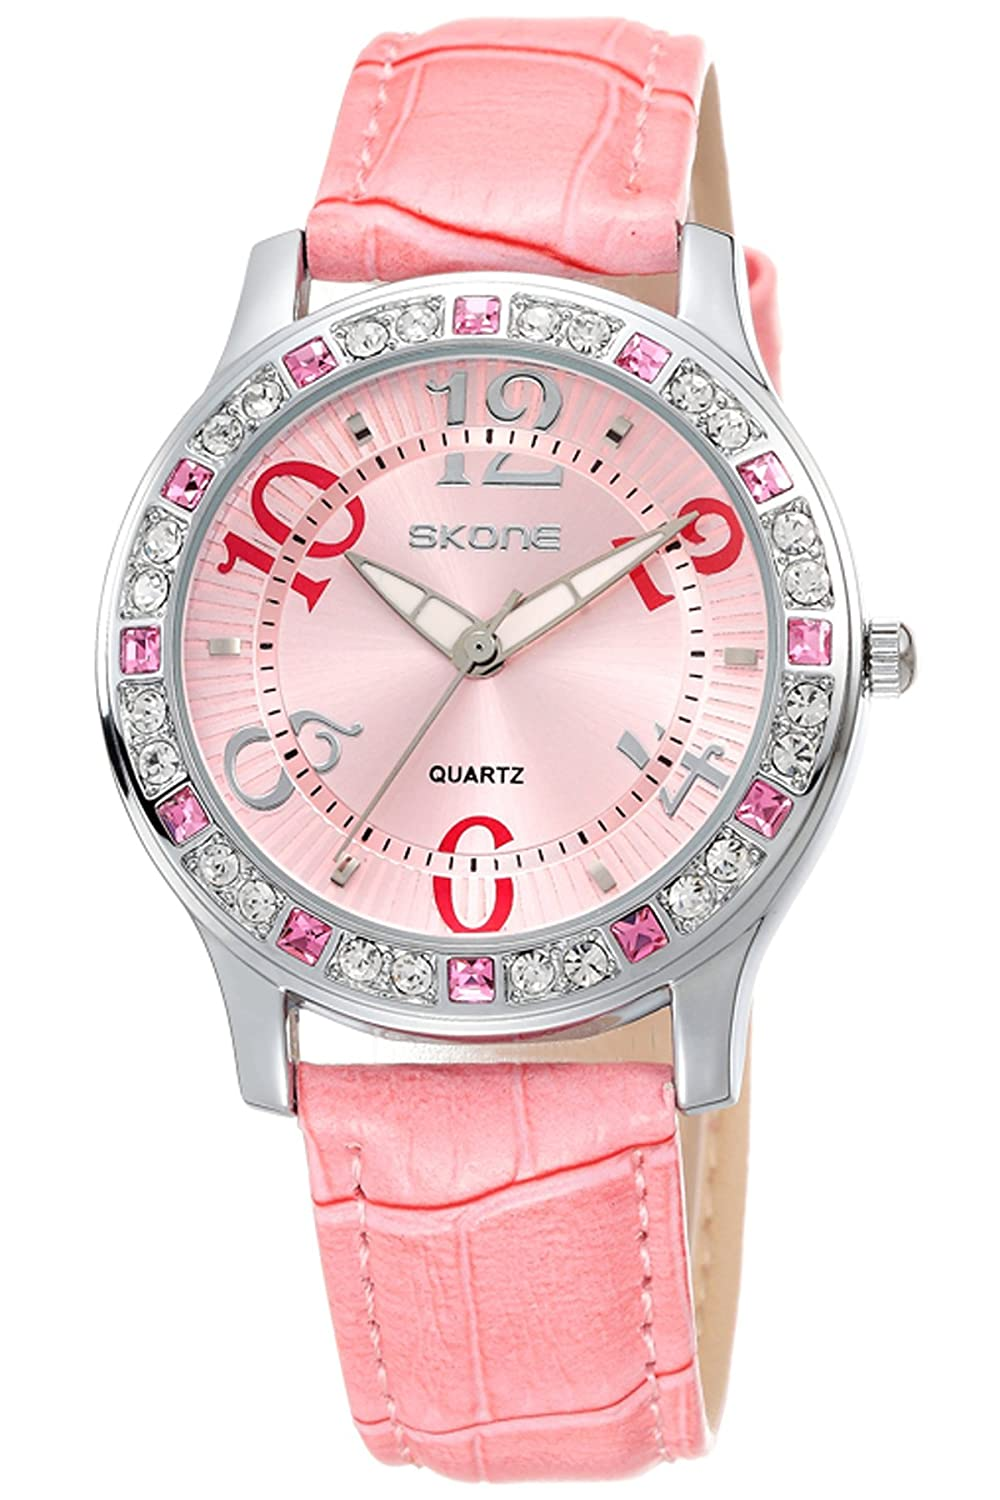 Amazon.com: Ladies Elegant Dress Watch Fashion Casual Crystal Leather Quartz Analog Watches Pink: Watches